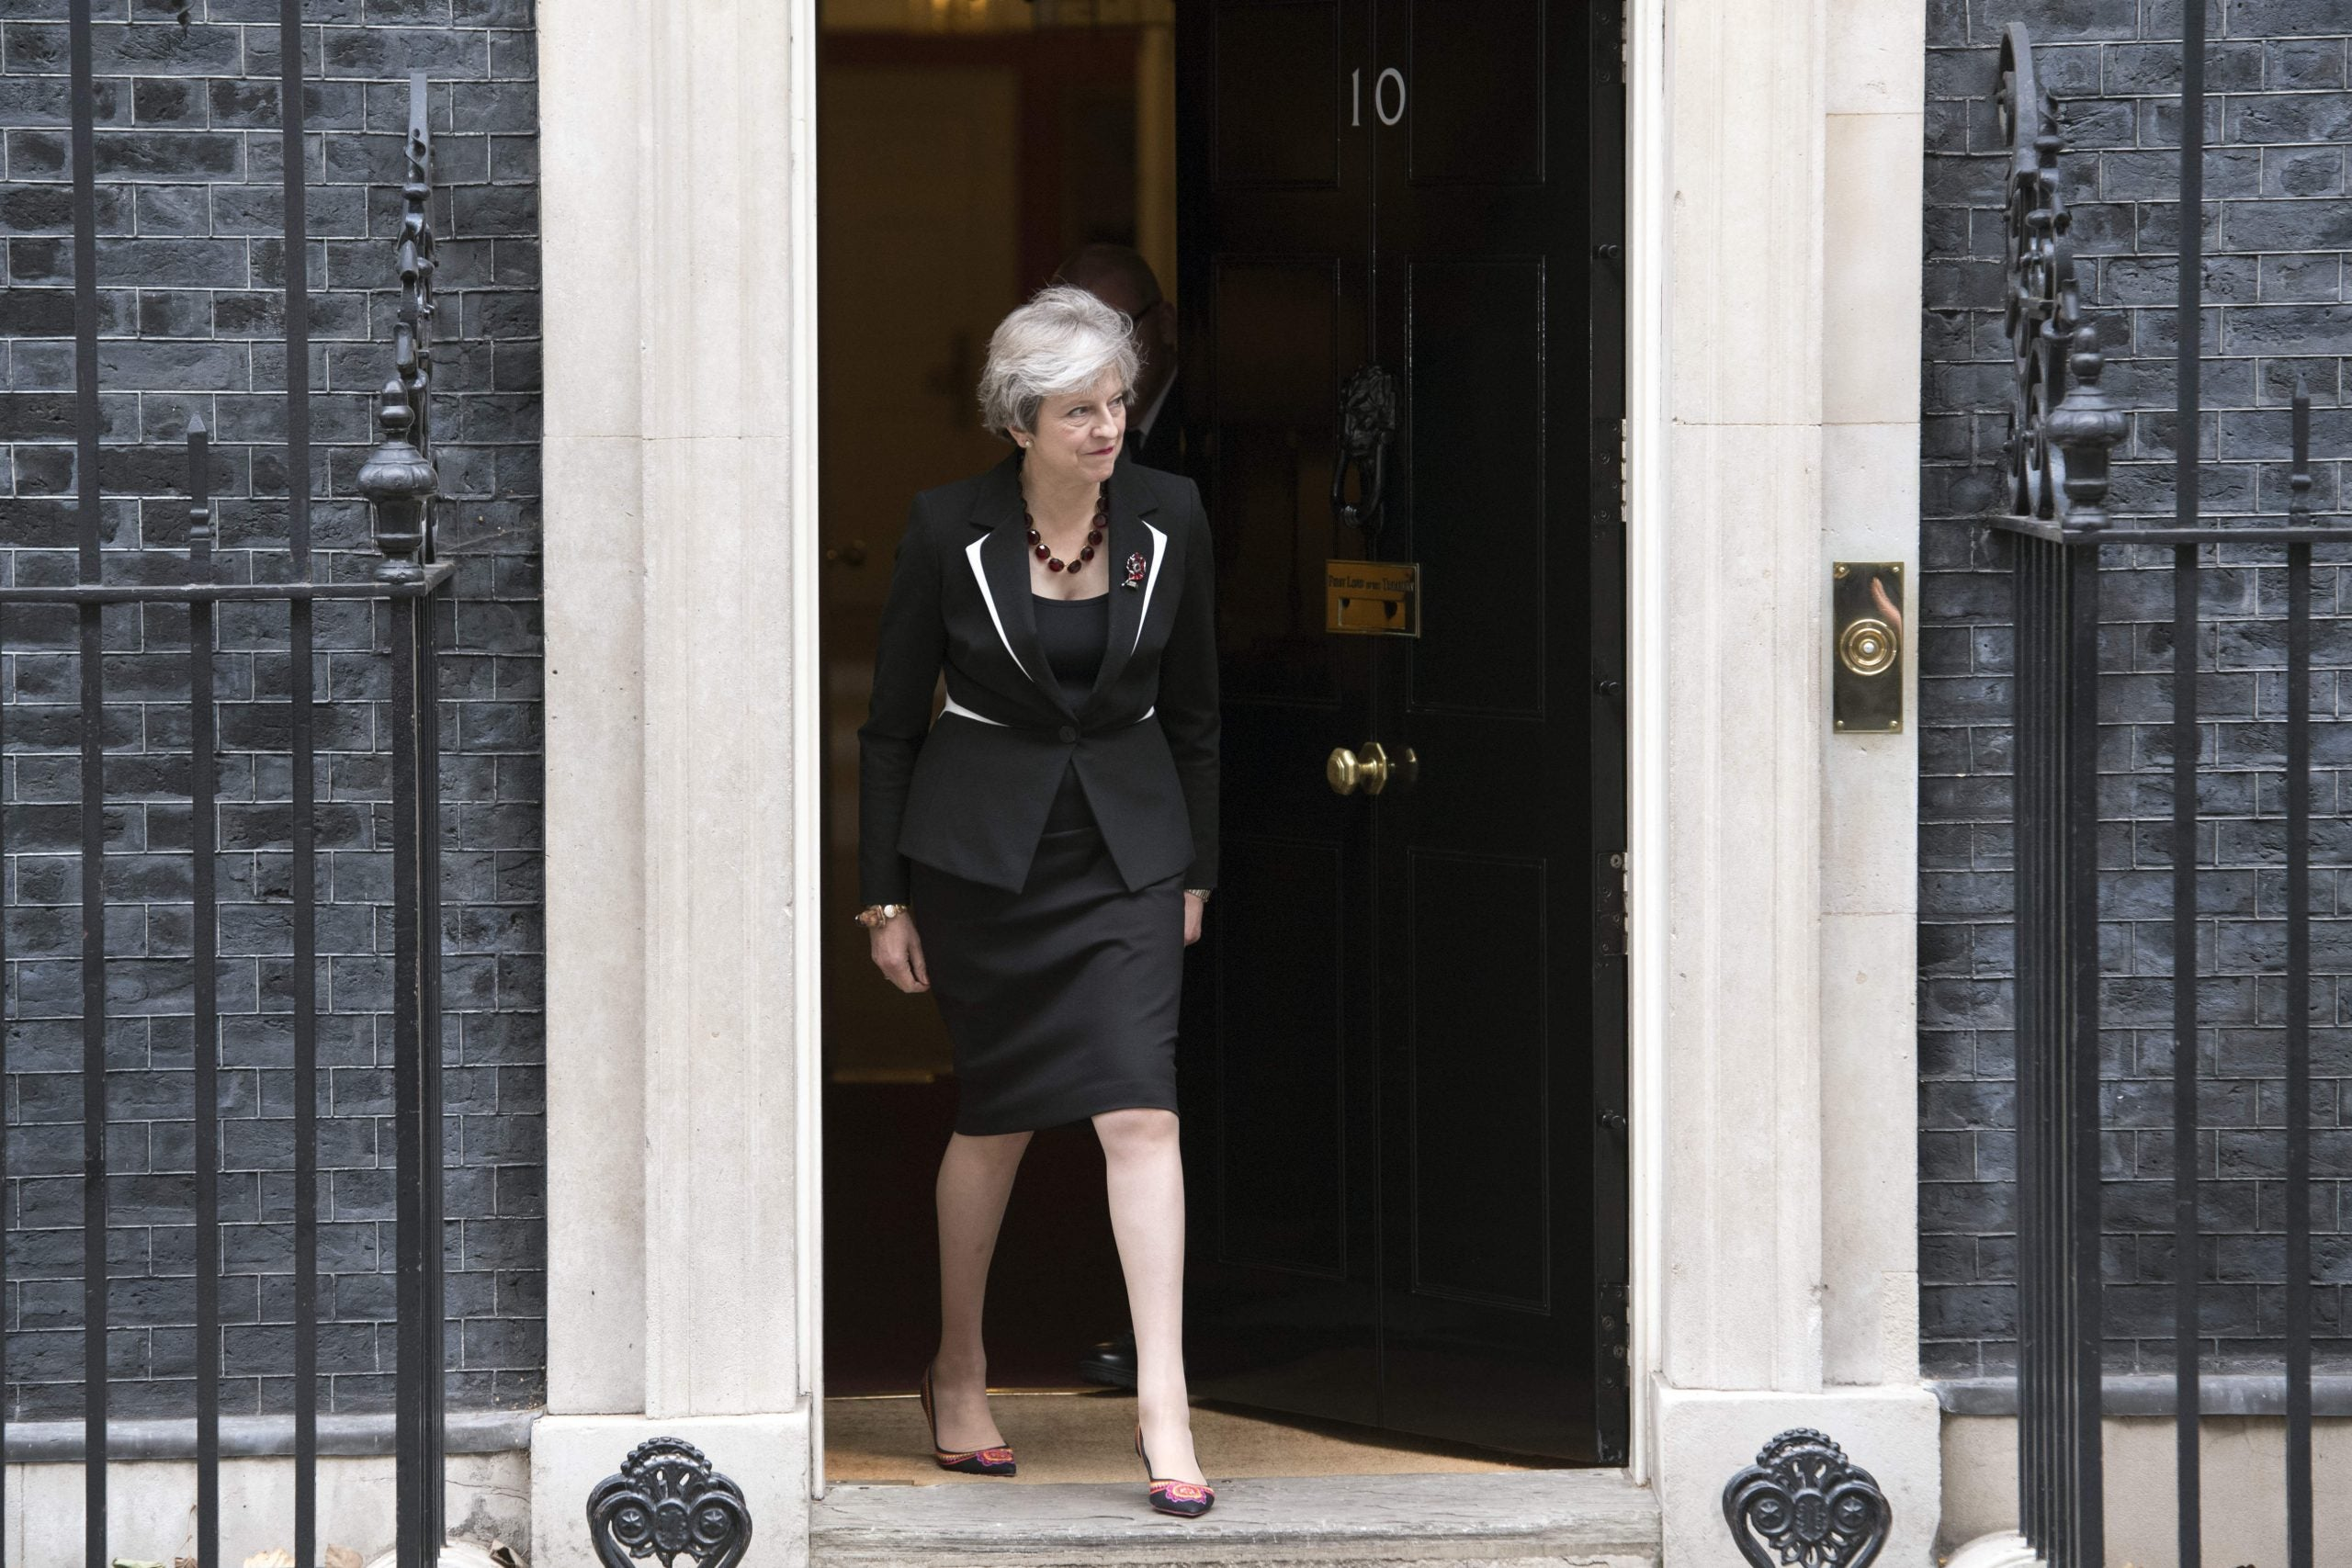 Commons Confidential: Not resigning is the new loyalty in Theresa May's circus